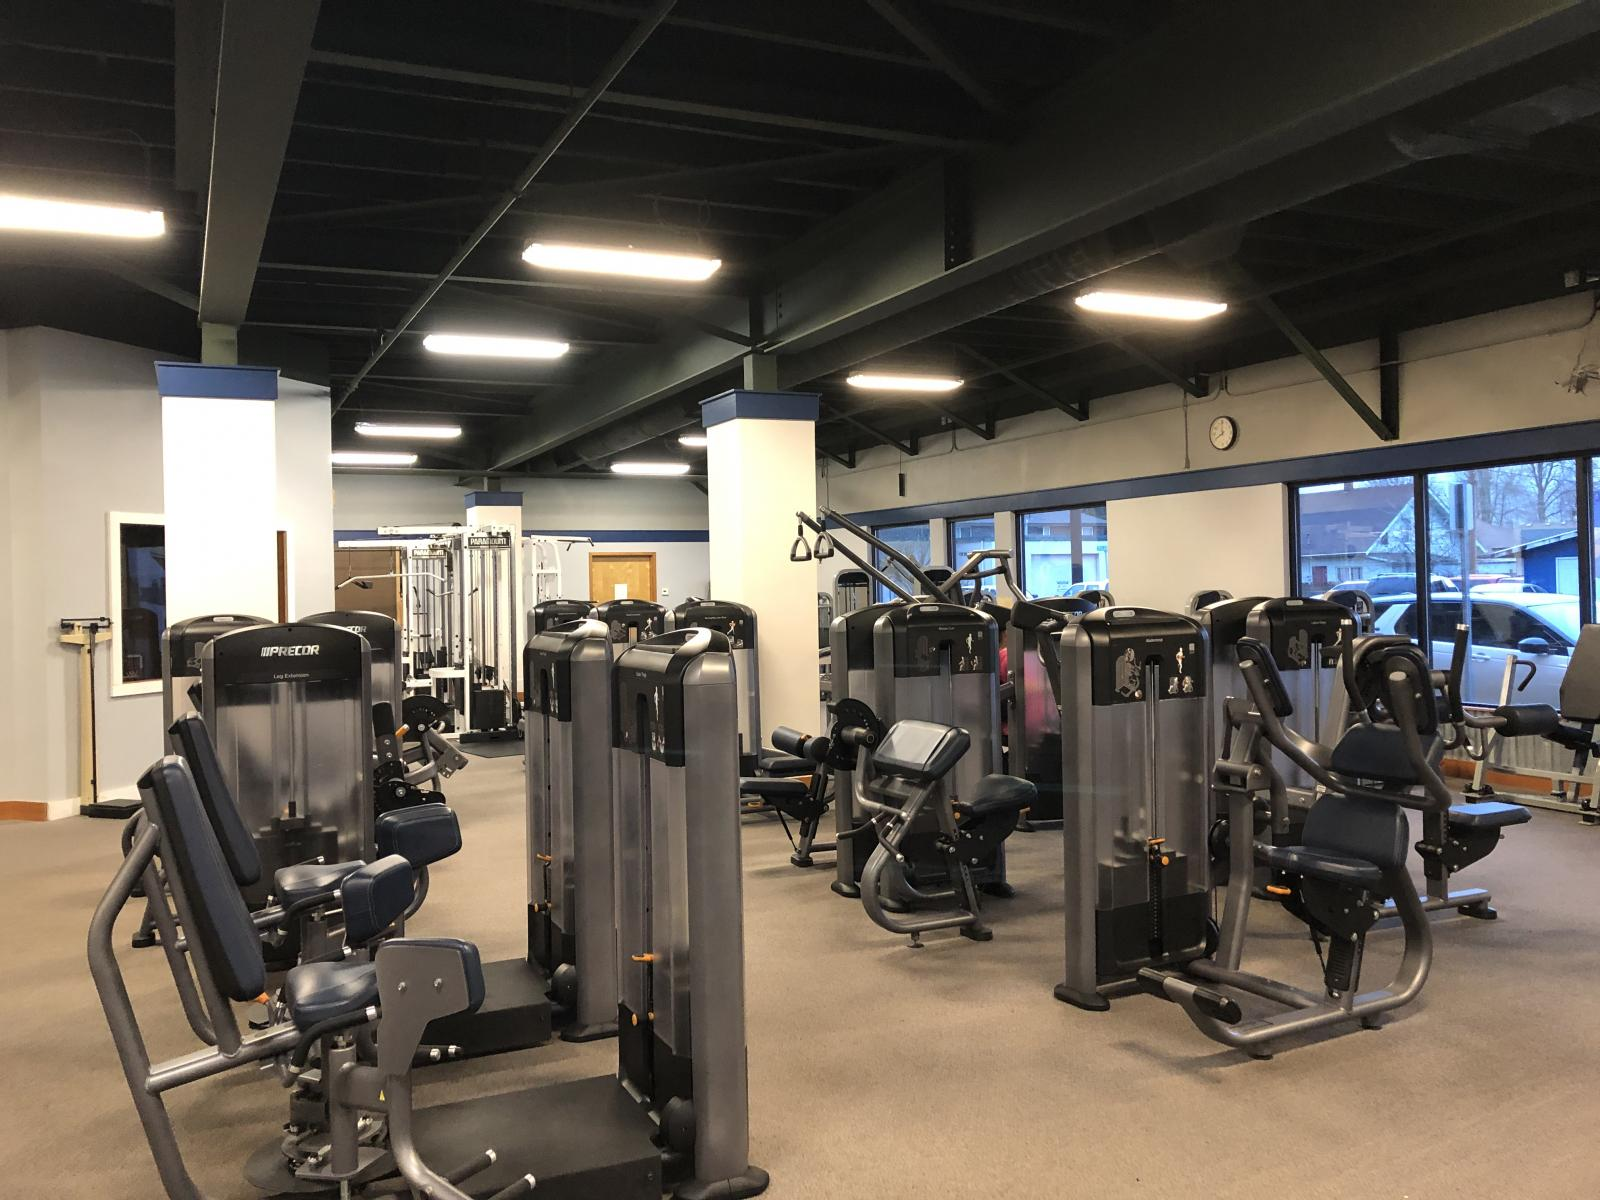 Machines in a gym